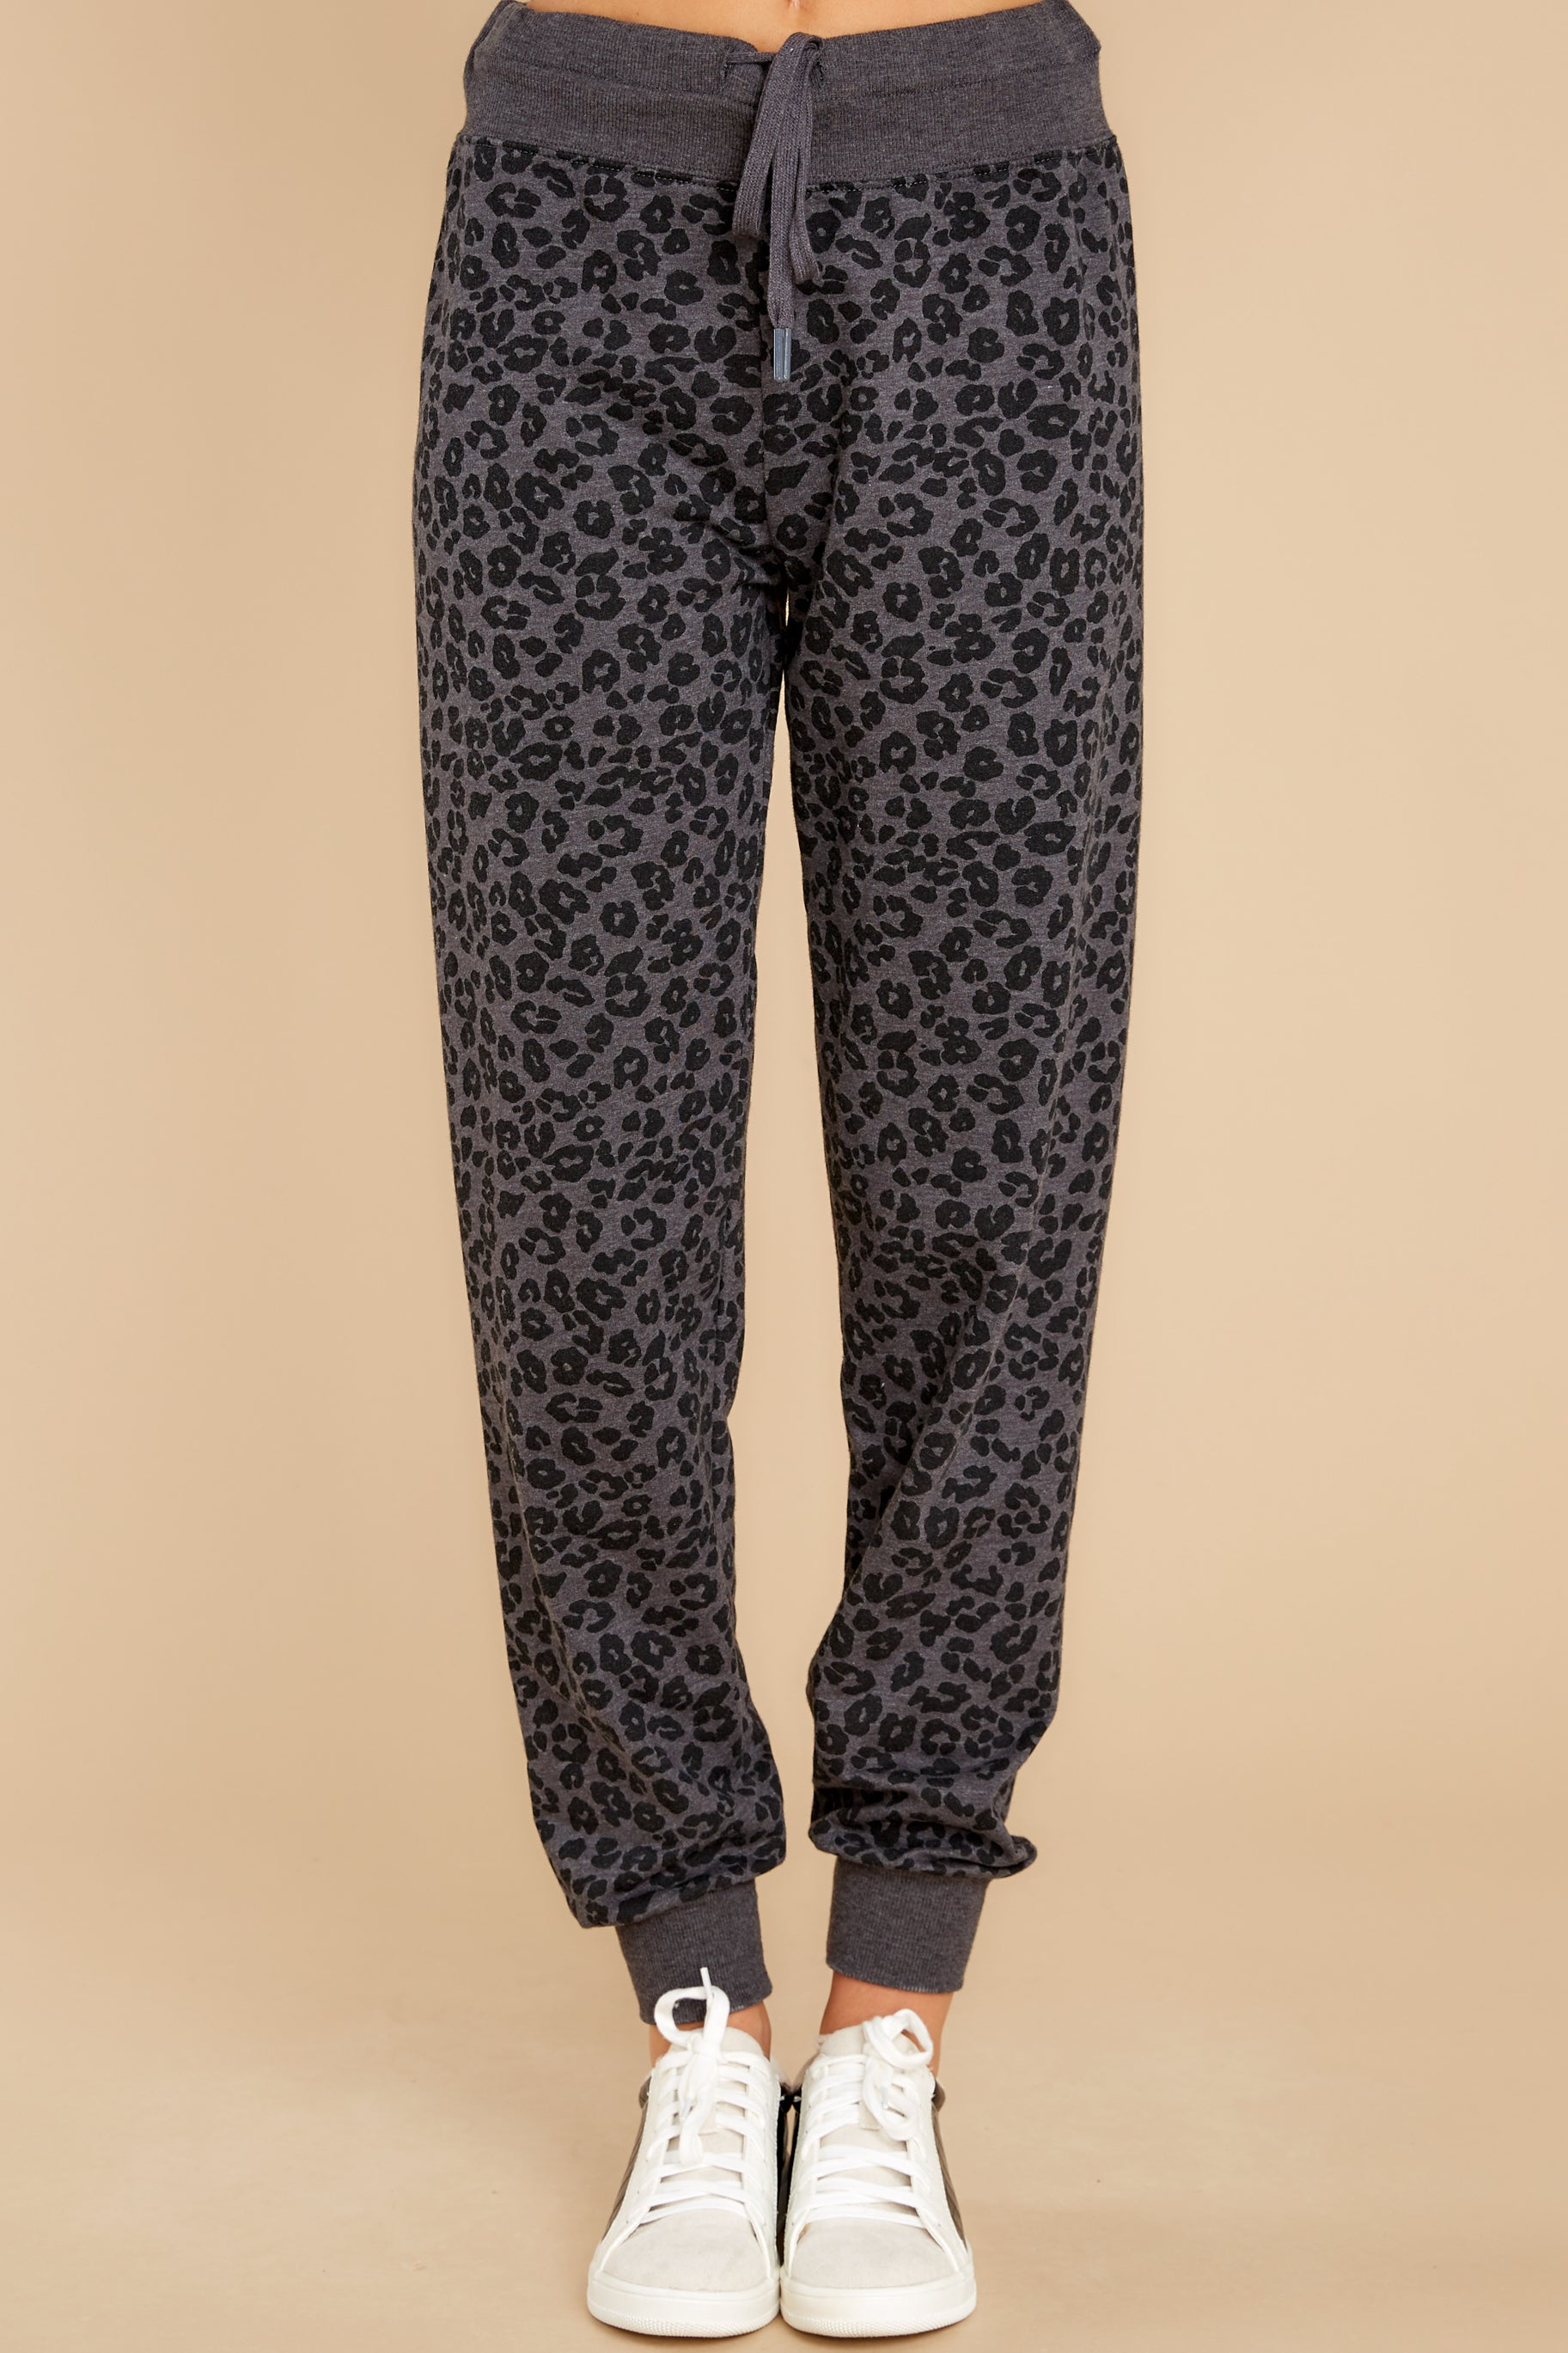 2 Ava Black Leopard Joggers at reddress.com